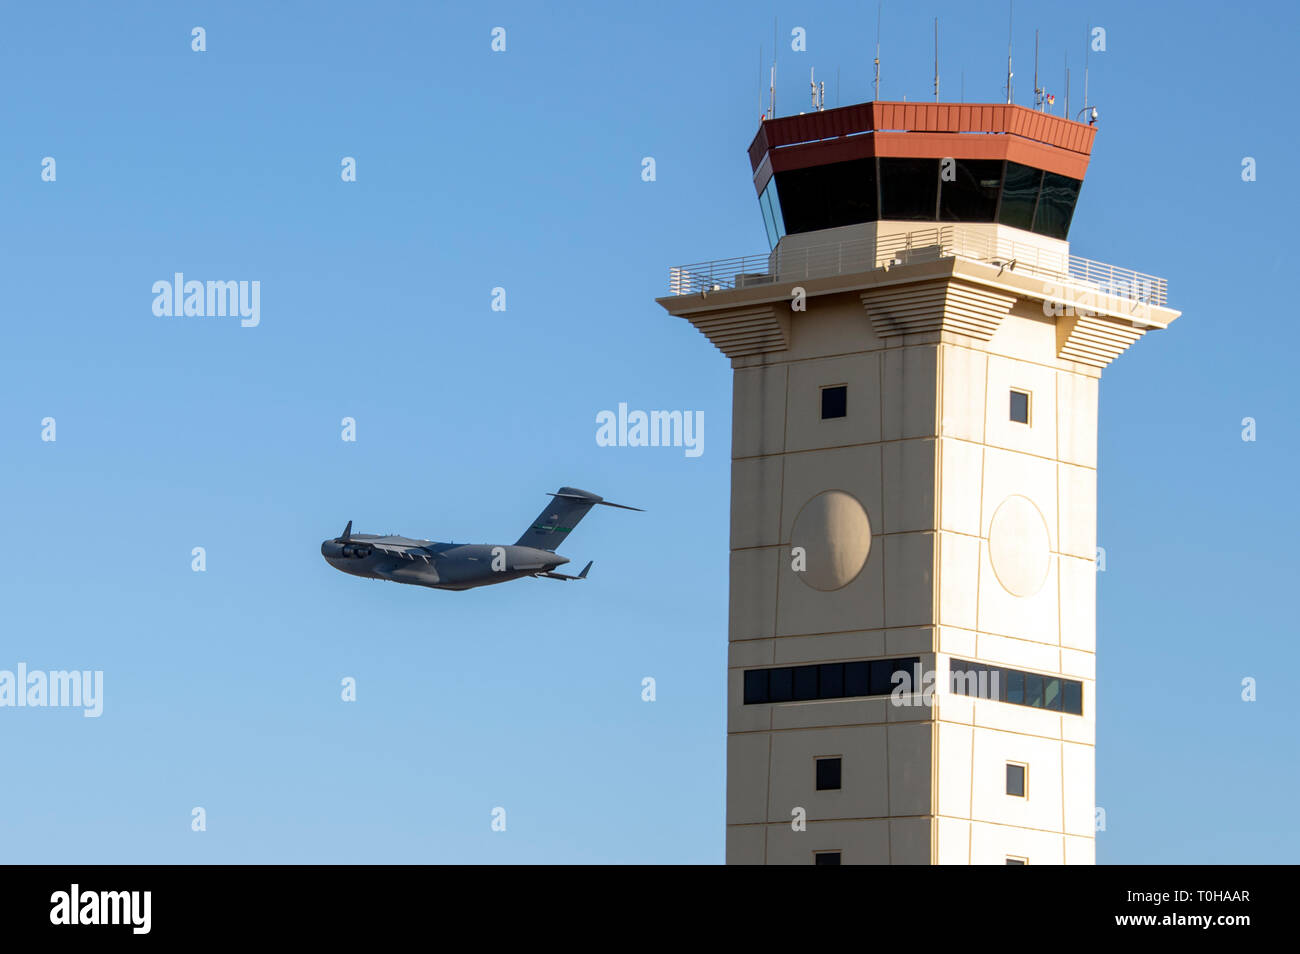 A U.S. Air Force C-17 Globe Master III assigned to McChord Air Force Base, Wash., flies past the control tower, Dec. 7, 2018 at Travis Air Force Base, Calif. The C-17 is capable of rapid strategic delivery of troops and all types of cargo to bases all over the world. The aircraft can perform tactical airlift and airdrop missions, as well as transport litters and ambulatory patients during aeromedical evacuations. (U.S. Air Force photo by Heide Couch) - Stock Image